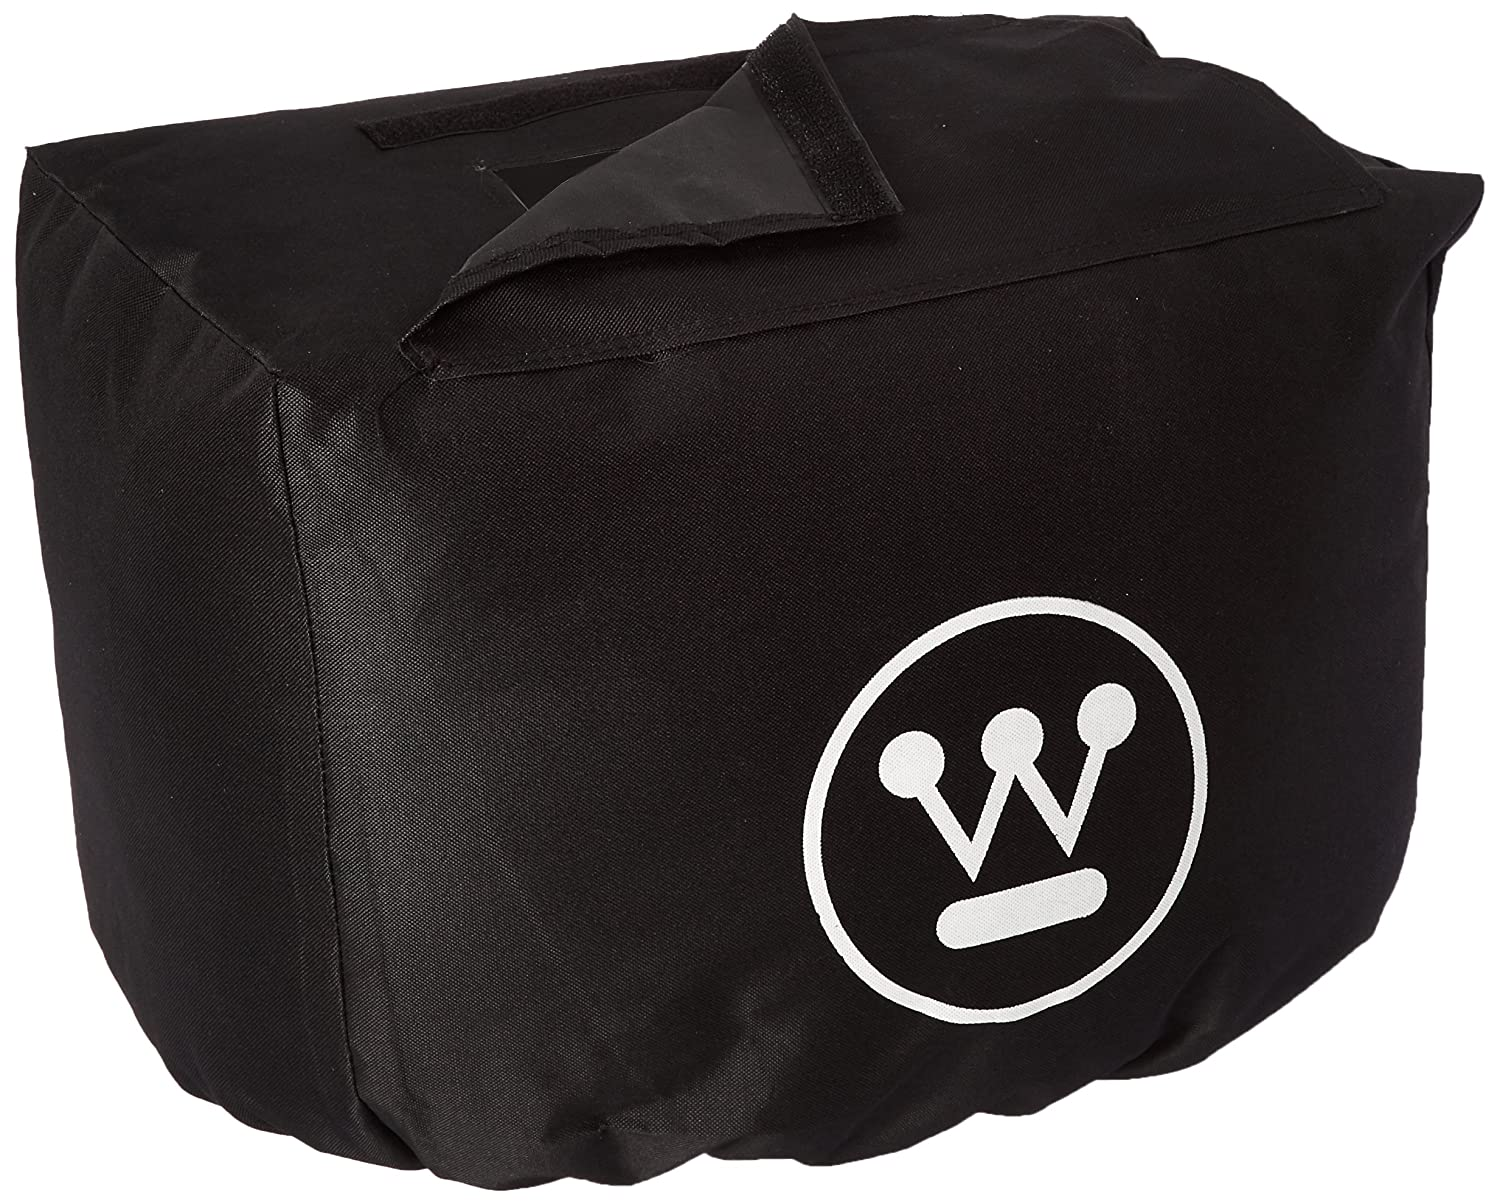 Westinghouse Inverter Generator Cover - Weather Resistant - Fits iGen1200, WH1000i